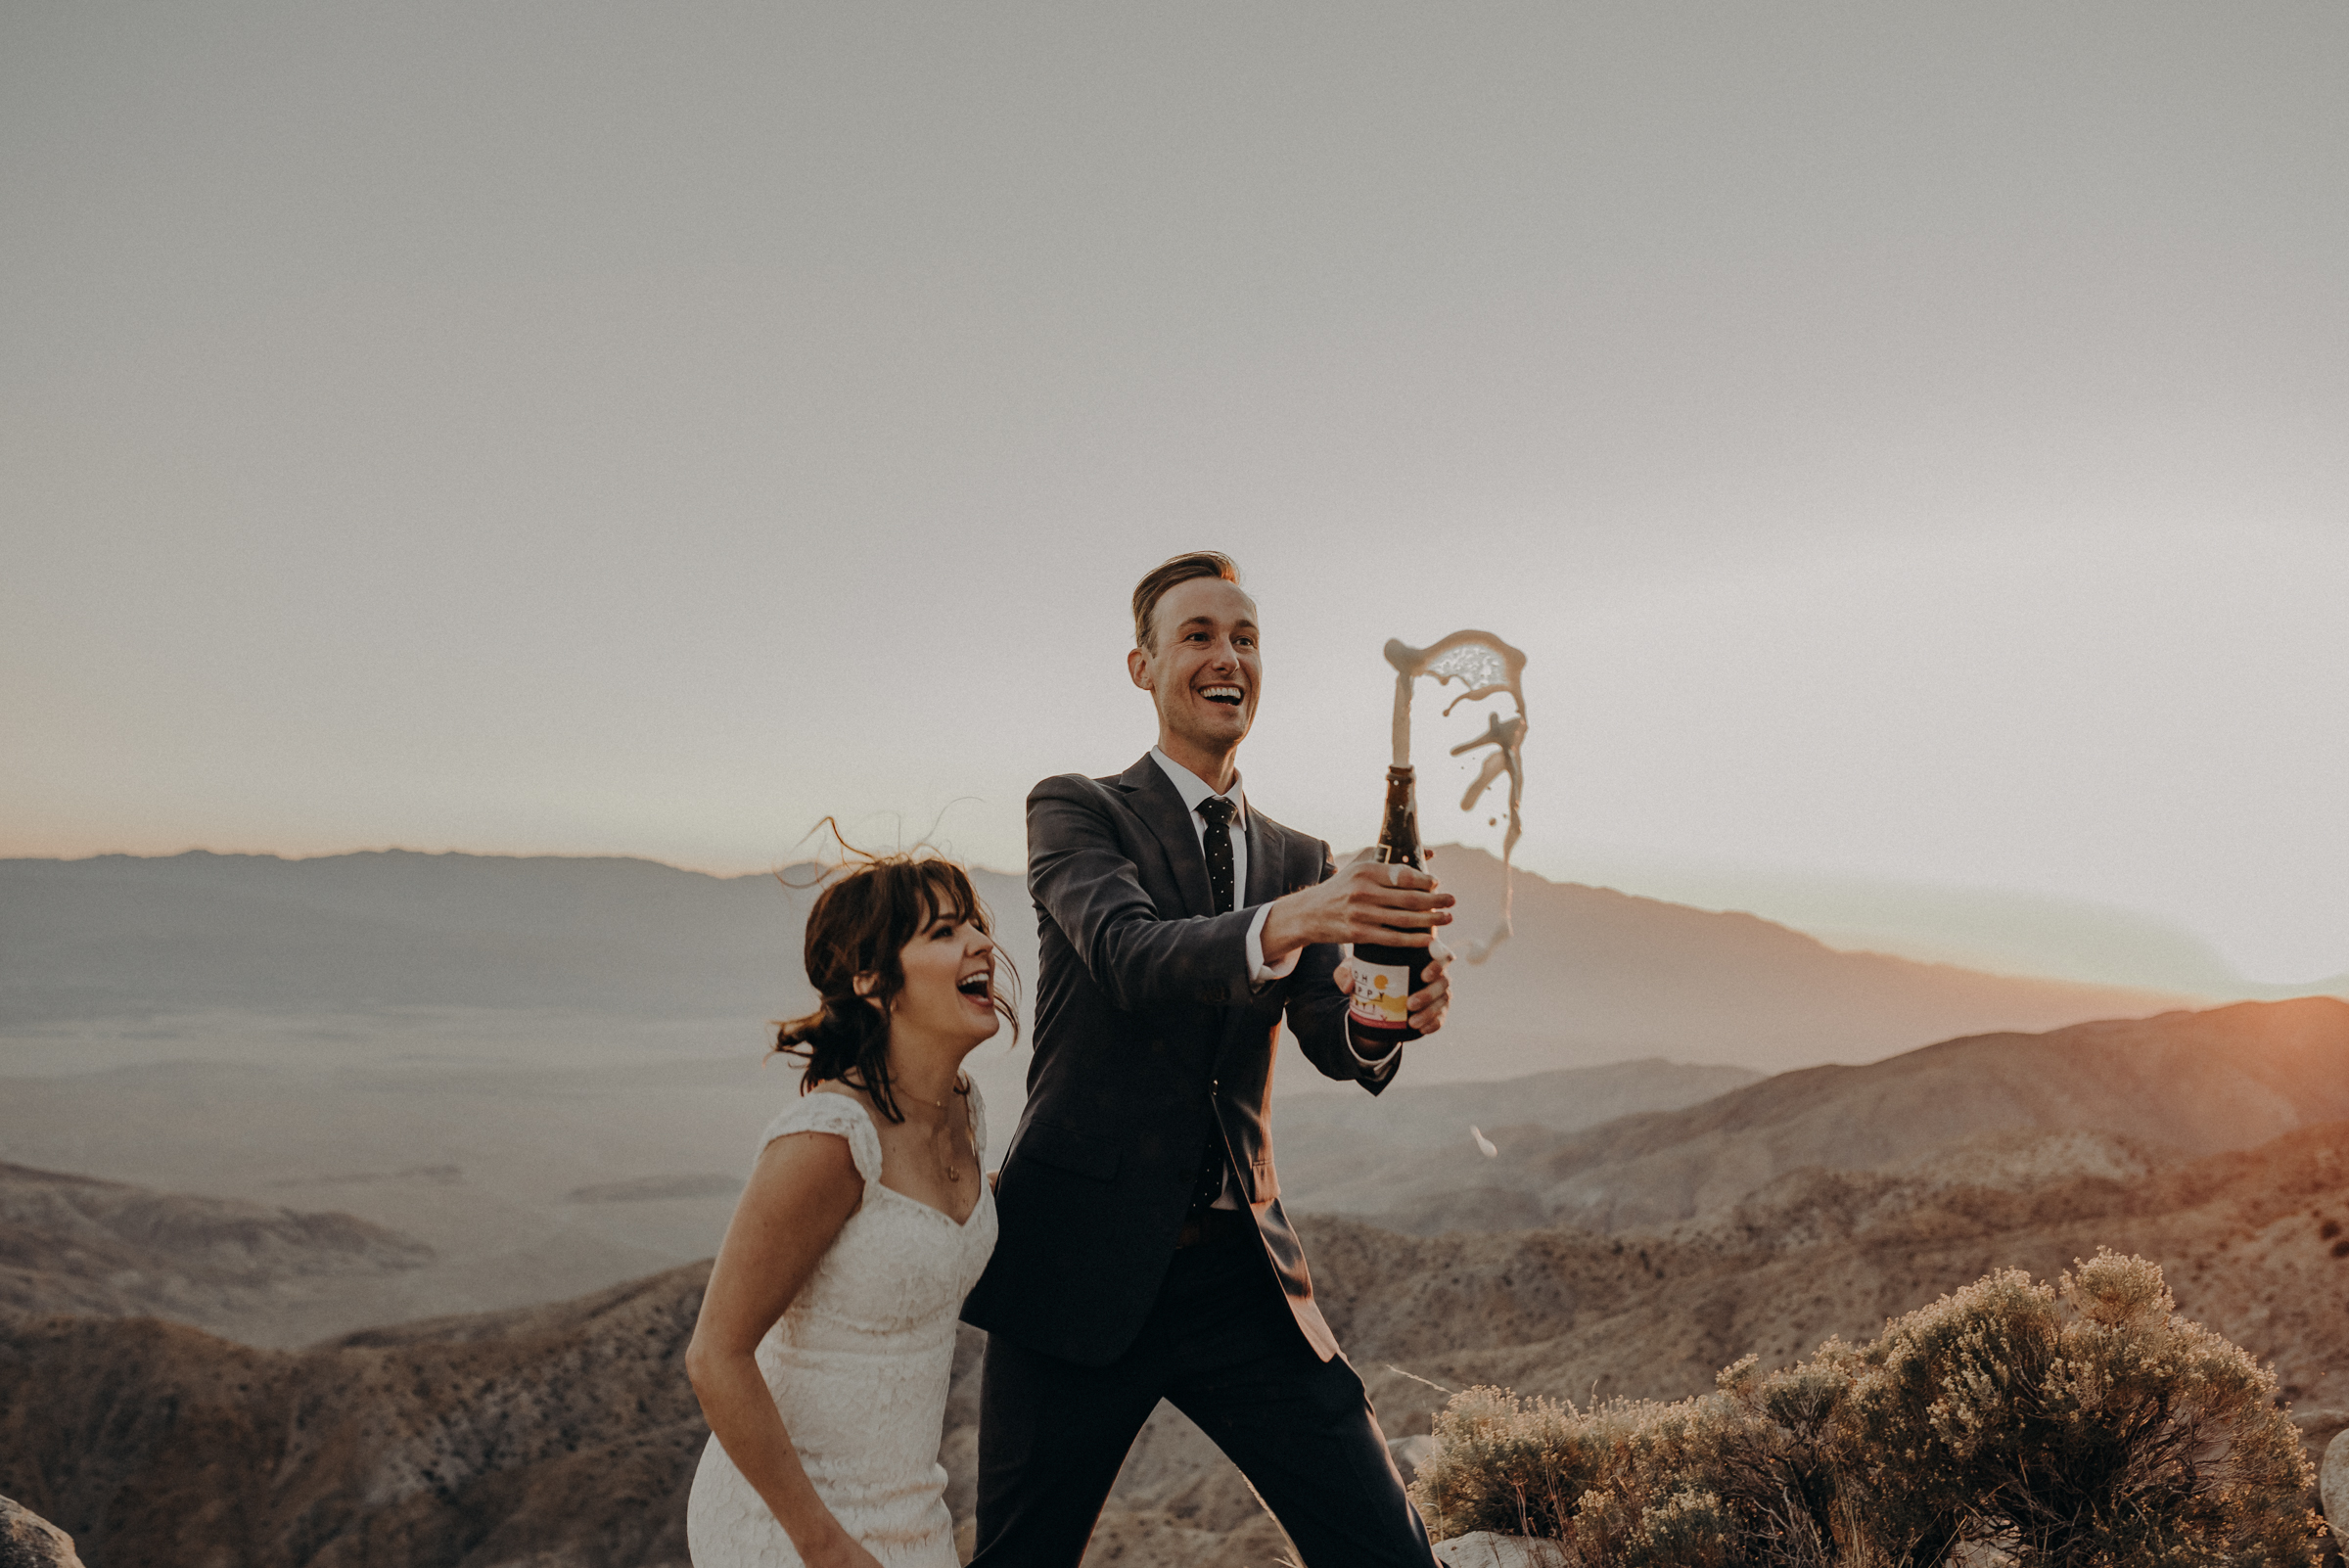 Joshua Tree Elopement - Los Angeles Wedding Photographers - IsaiahAndTaylor.com-116.jpg